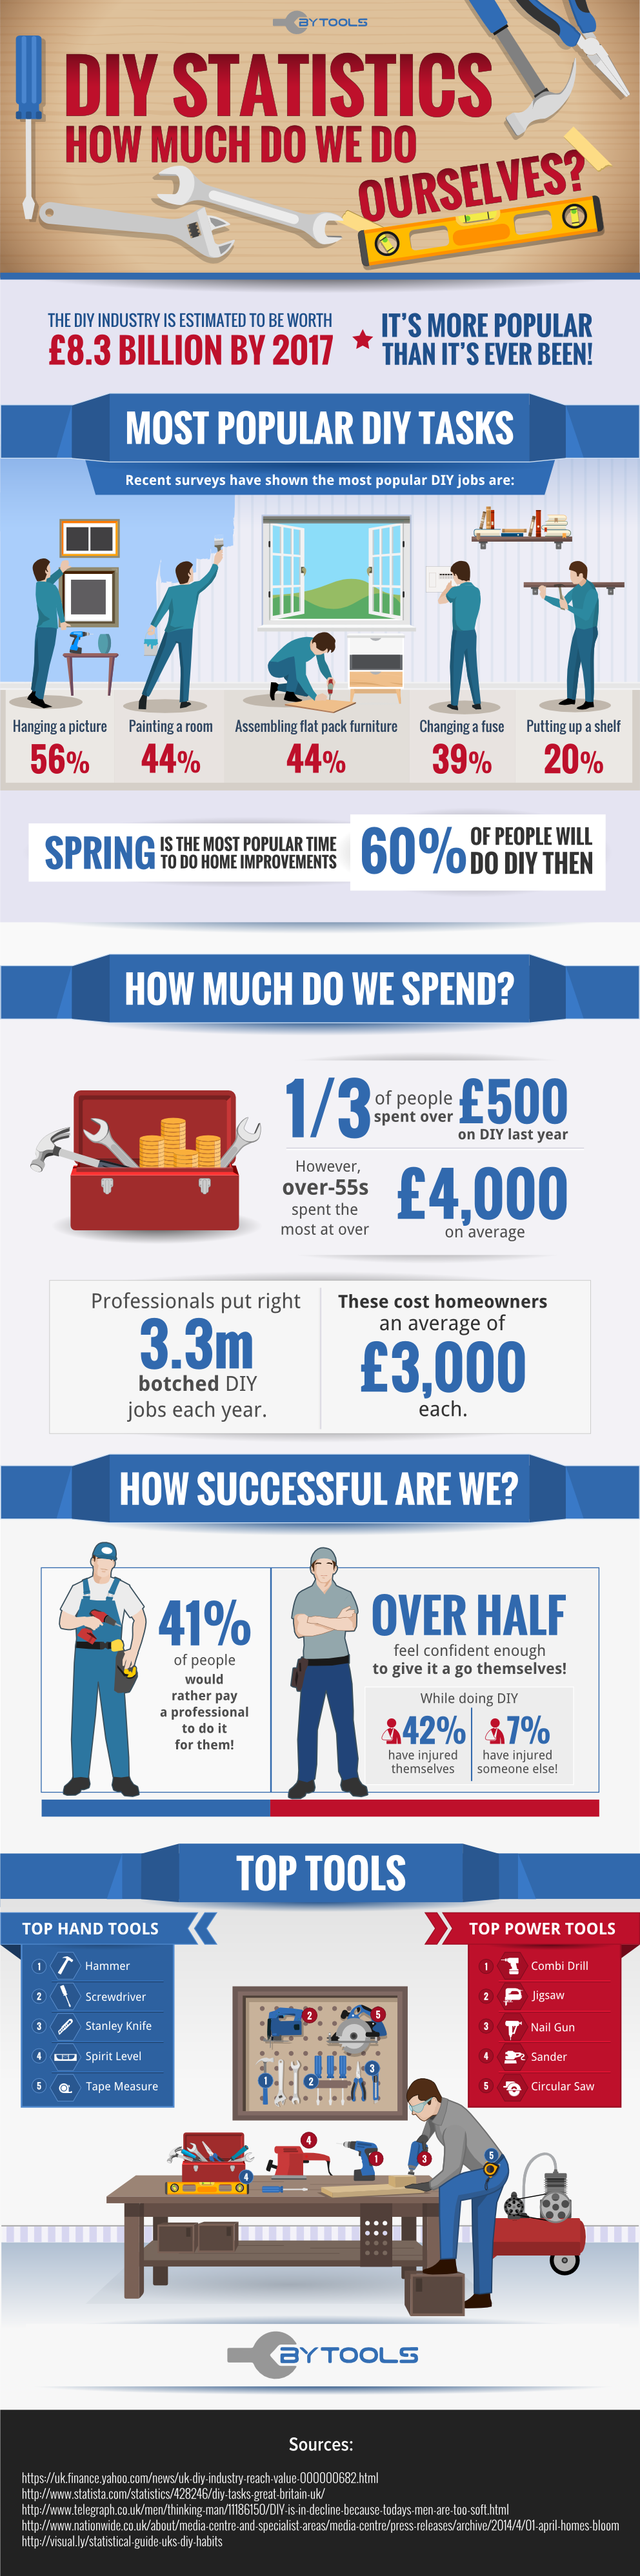 DIY Statistics How Much Do We Do Ourselves infographic